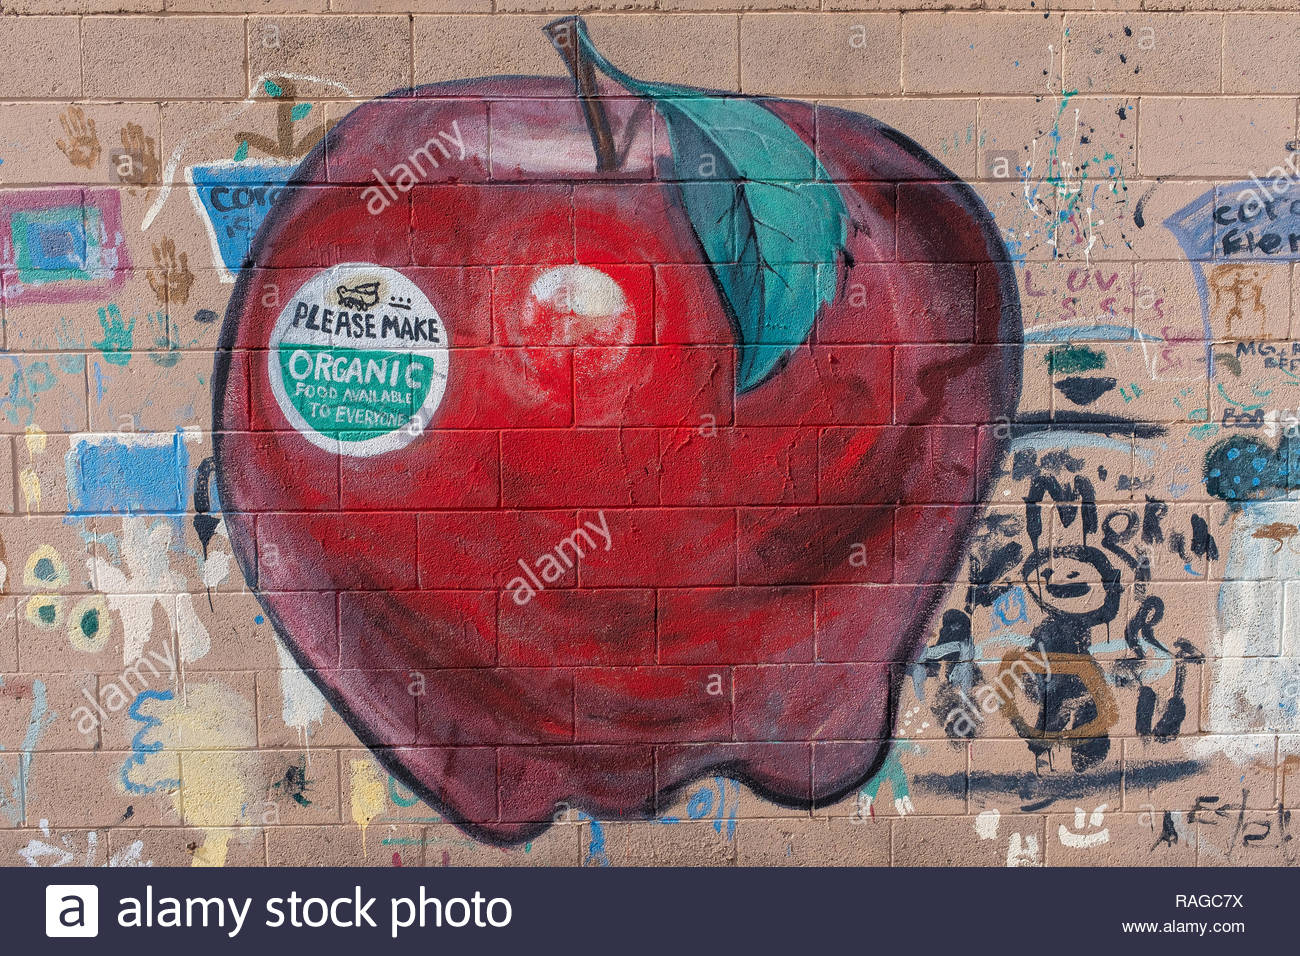 children's wall art of organic apple (organic food available to everyone) - Stock Image